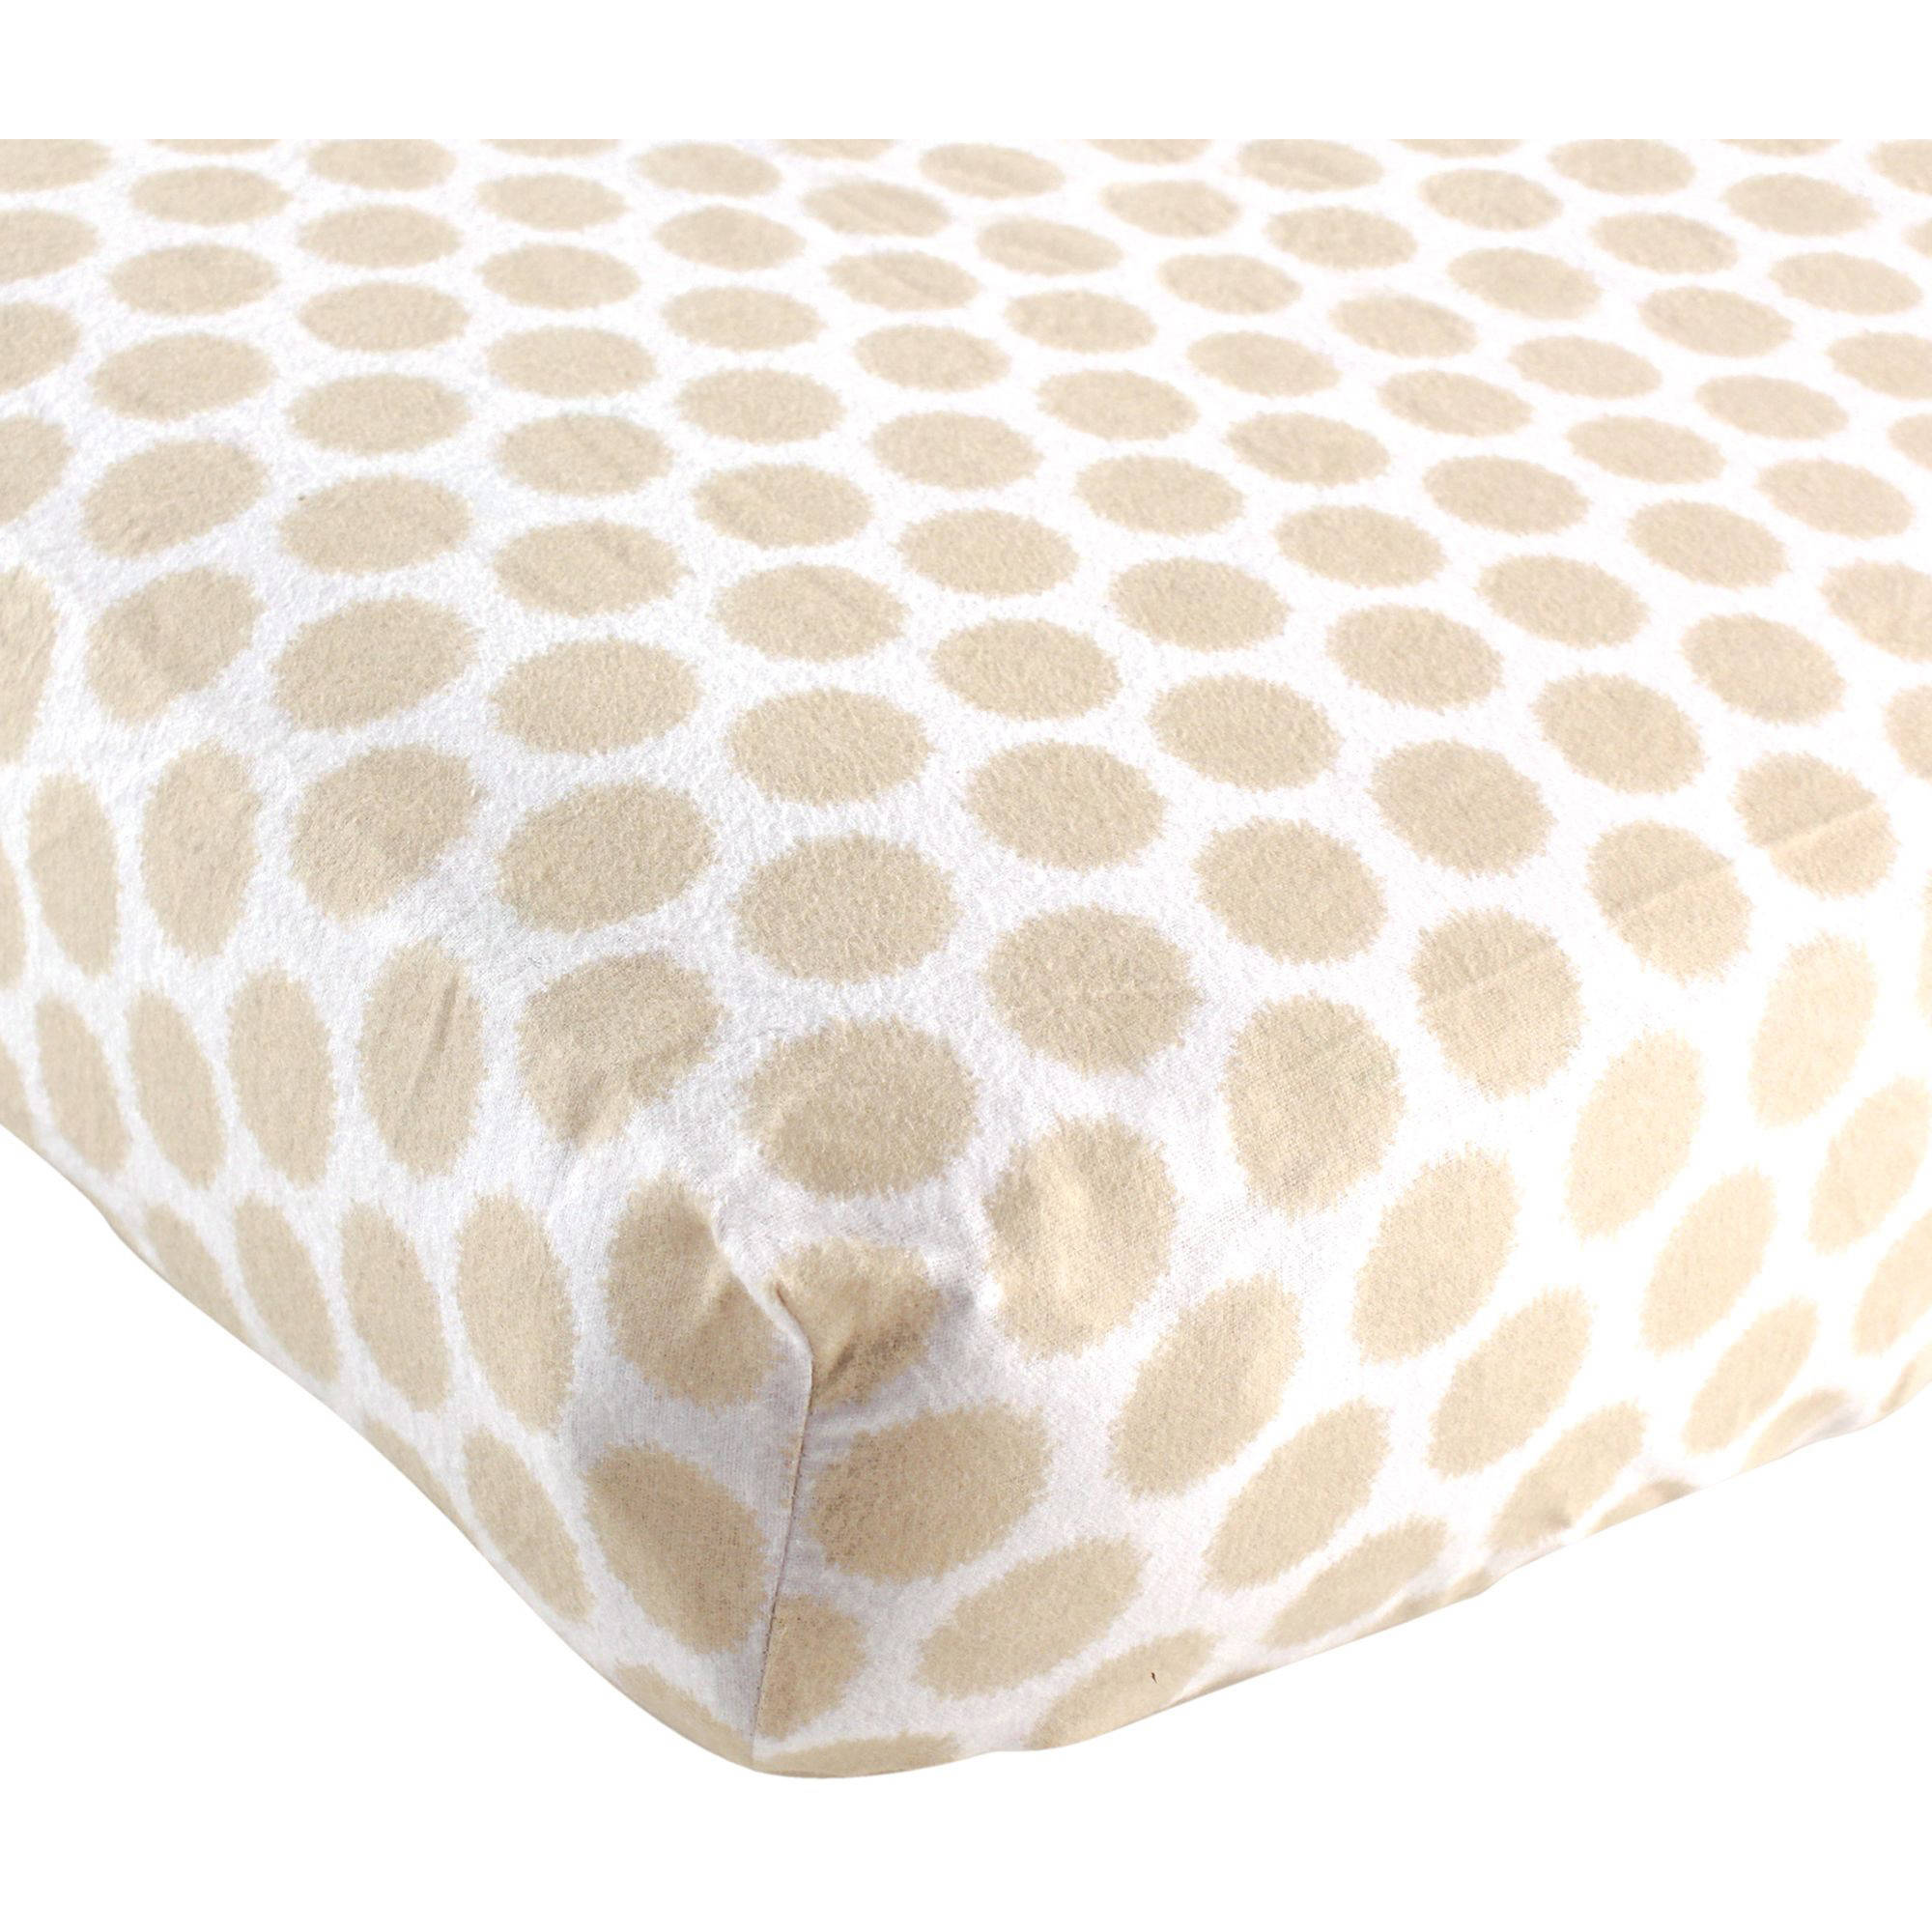 """Luvable Friends Fitted Crib Sheet, Flannel, 28"""" x 52"""", Tan"""